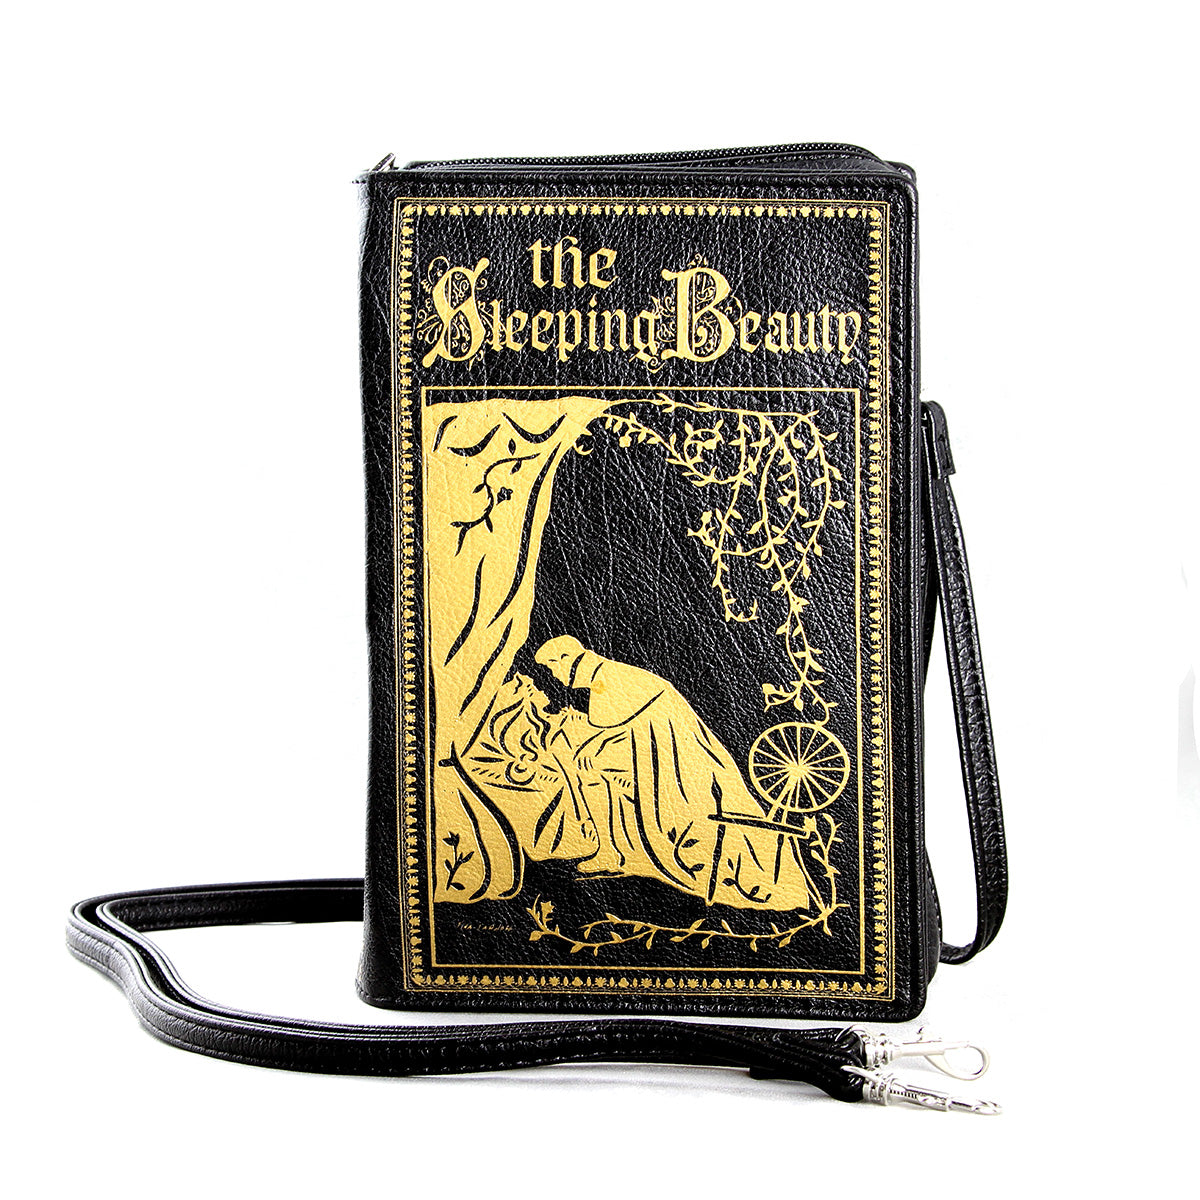 The Sleeping Beauty Vintage Book Clutch Bag in Vinyl, front view